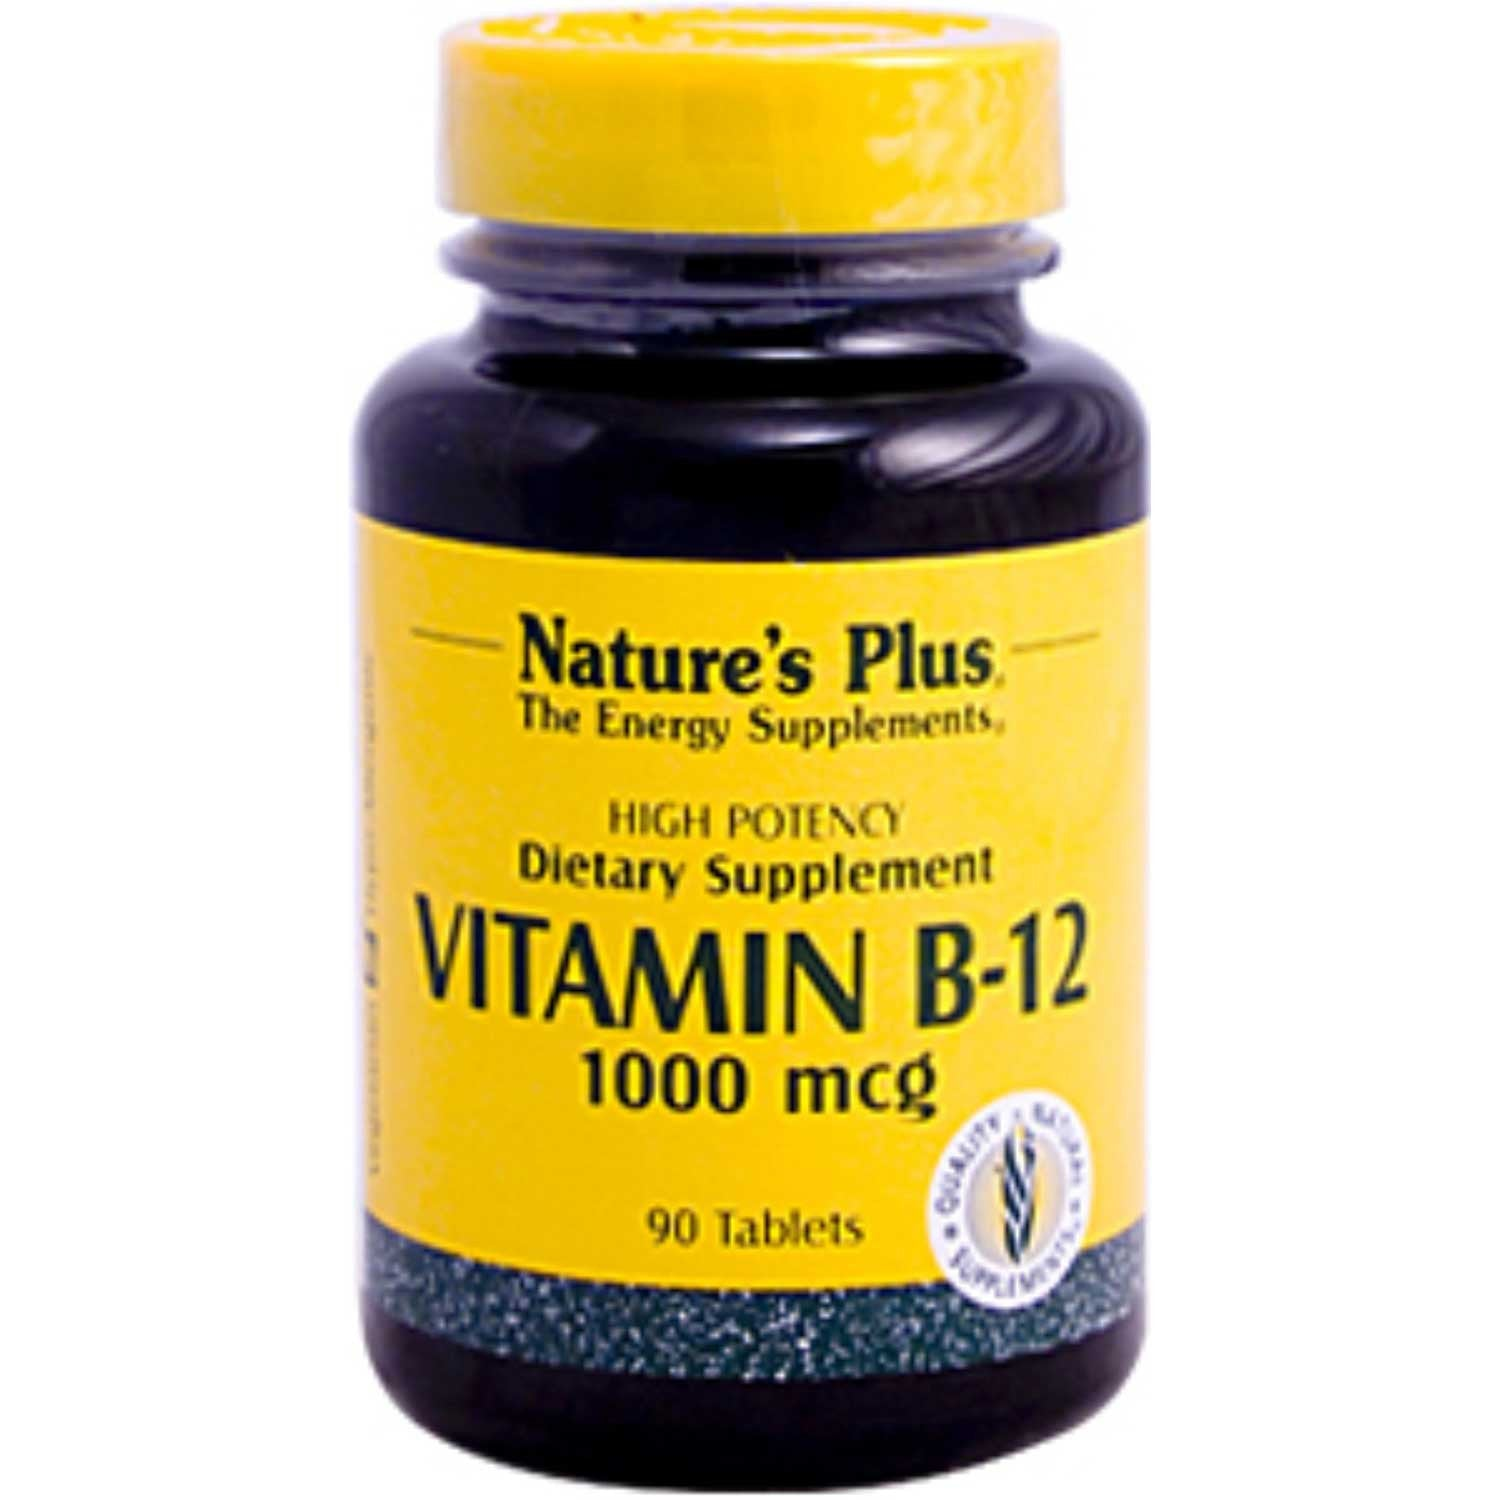 Natures Plus Vitamin B-12 1000 mcg, 90 tabs.-NaturesWisdom